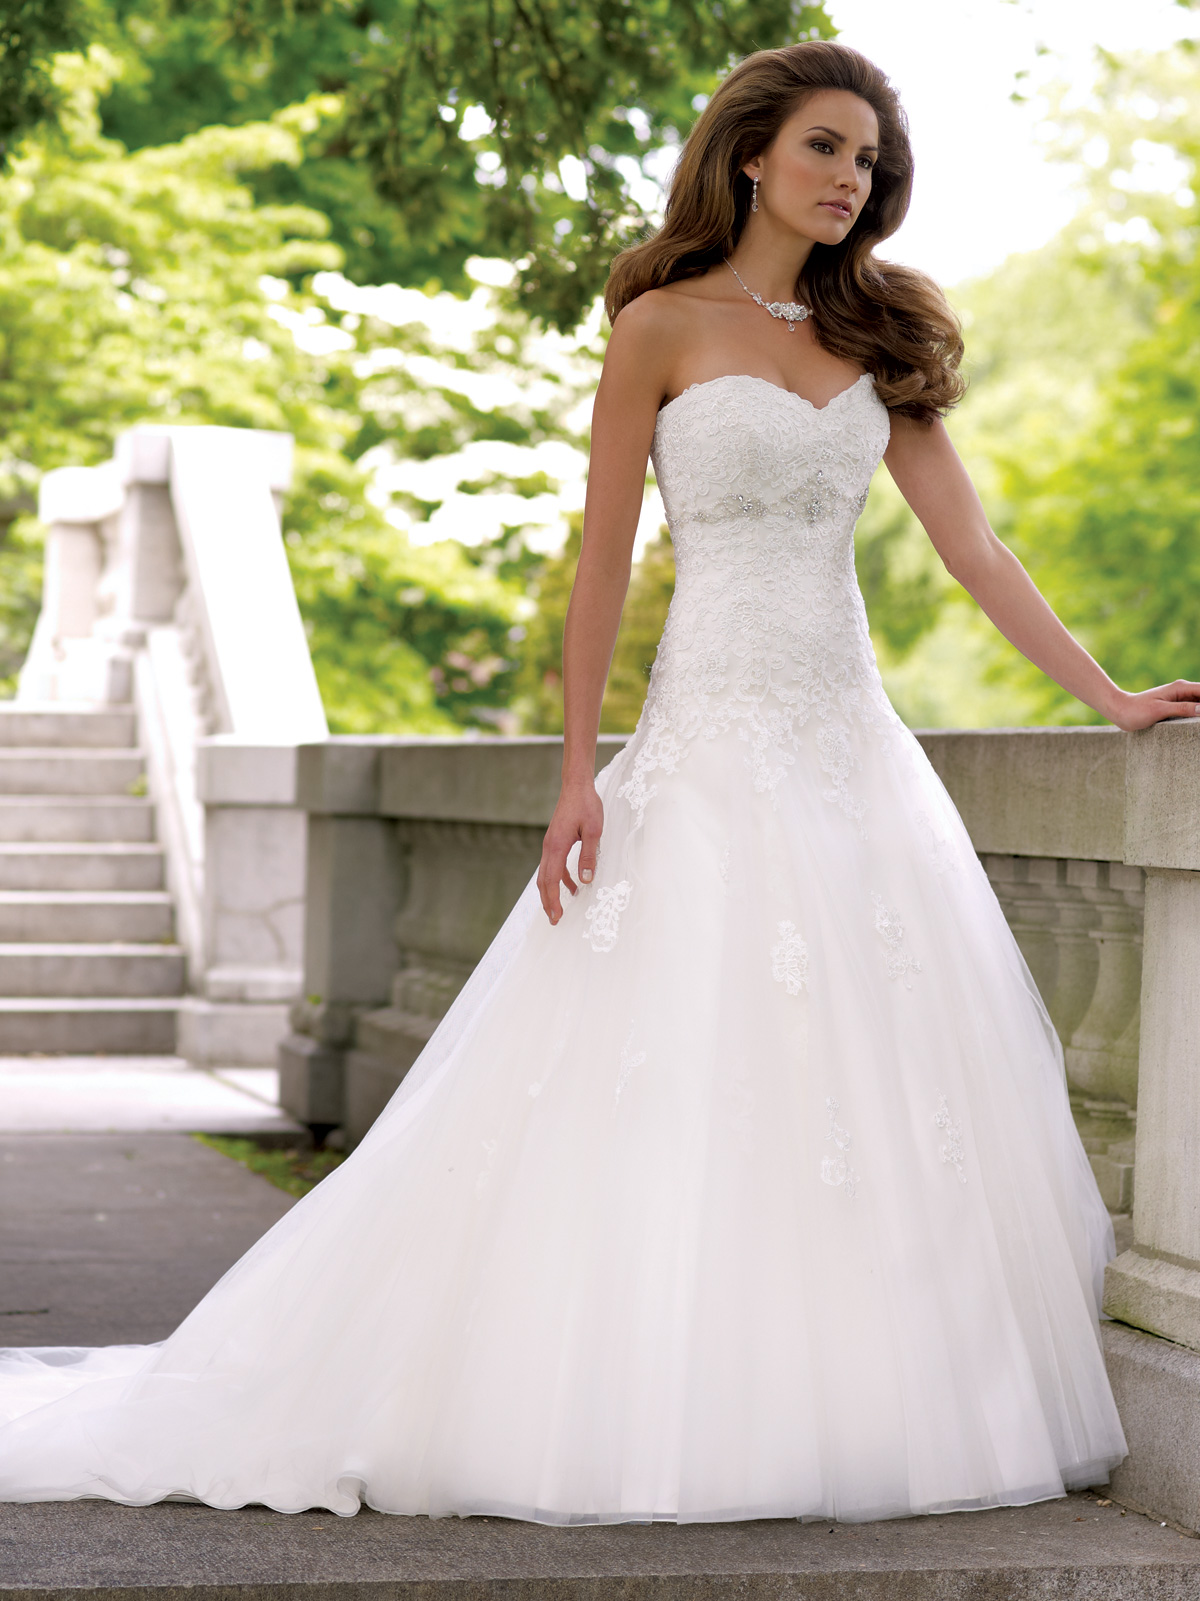 Strapless empire waist wedding dress cocktail dresses 2016 for What to wear under strapless wedding dress